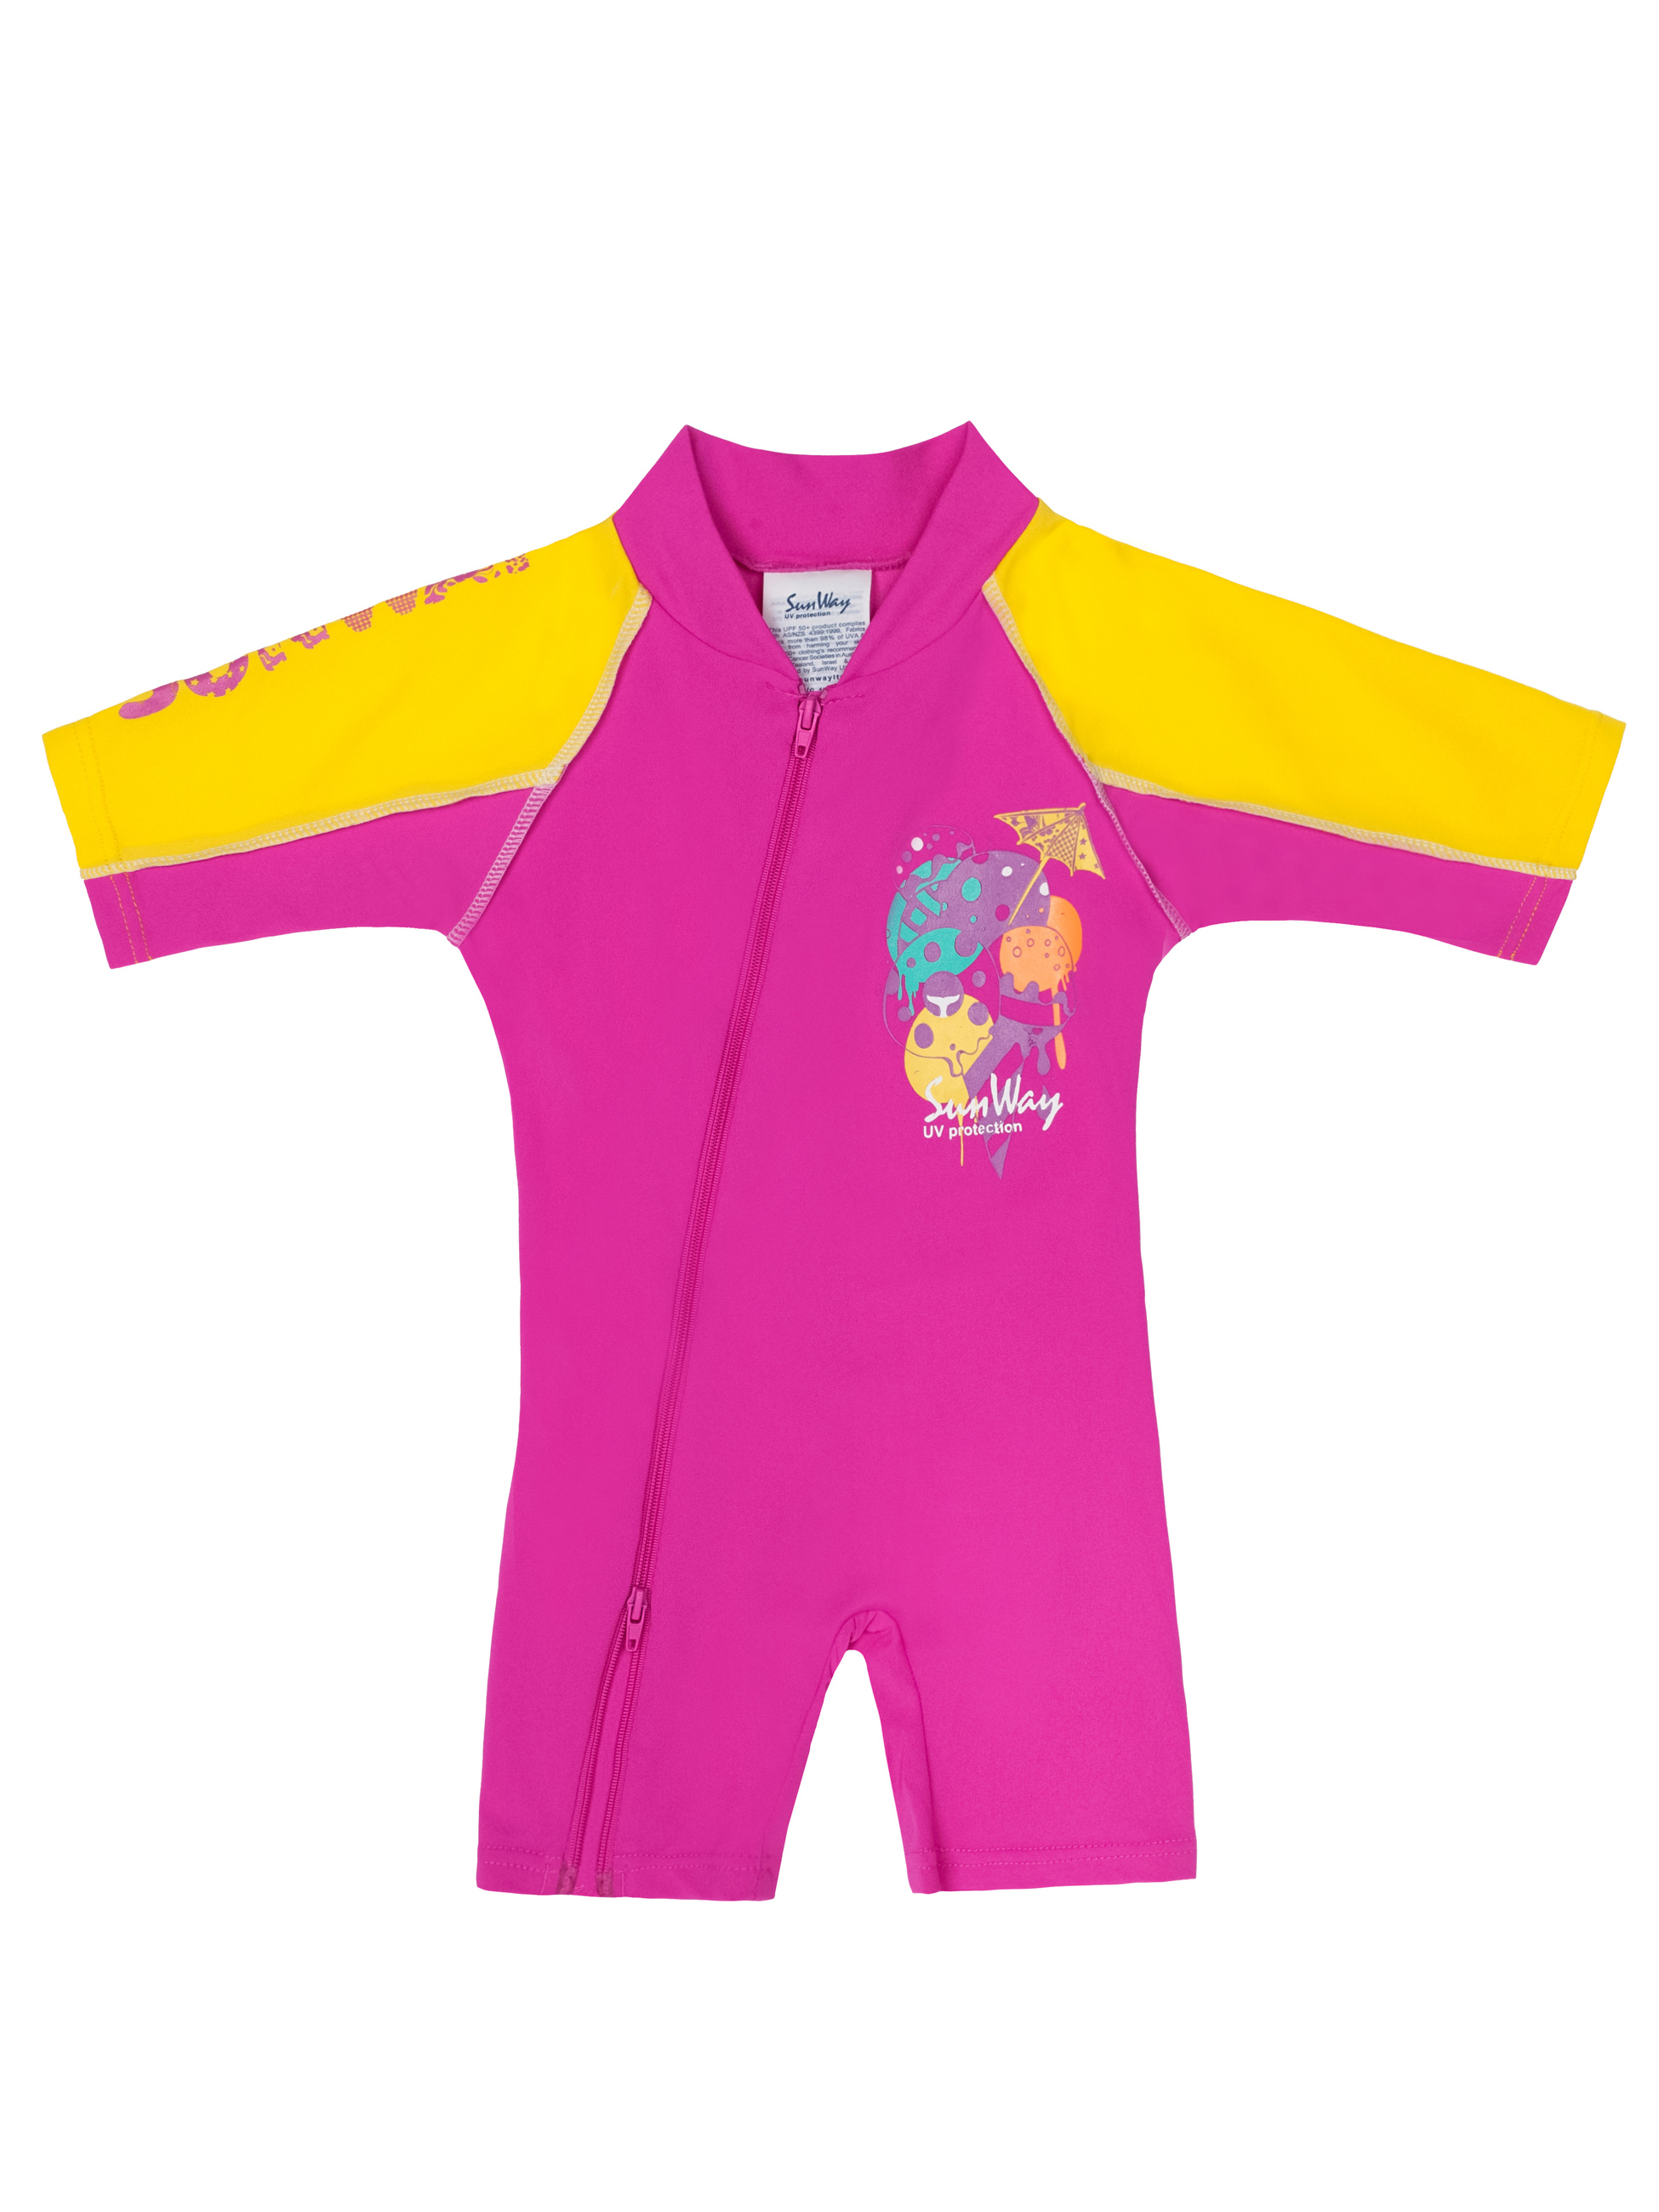 Sun protection swimwear can help you make the most of your beach vacation. SwimZip UPF 50+ UV protective fabric (the highest rated sun protection) block's 98% of UVA and UVB rays. Too much sun exposure - especially for babies, toddlers, and children - can lead directly to skin cancer later in life.